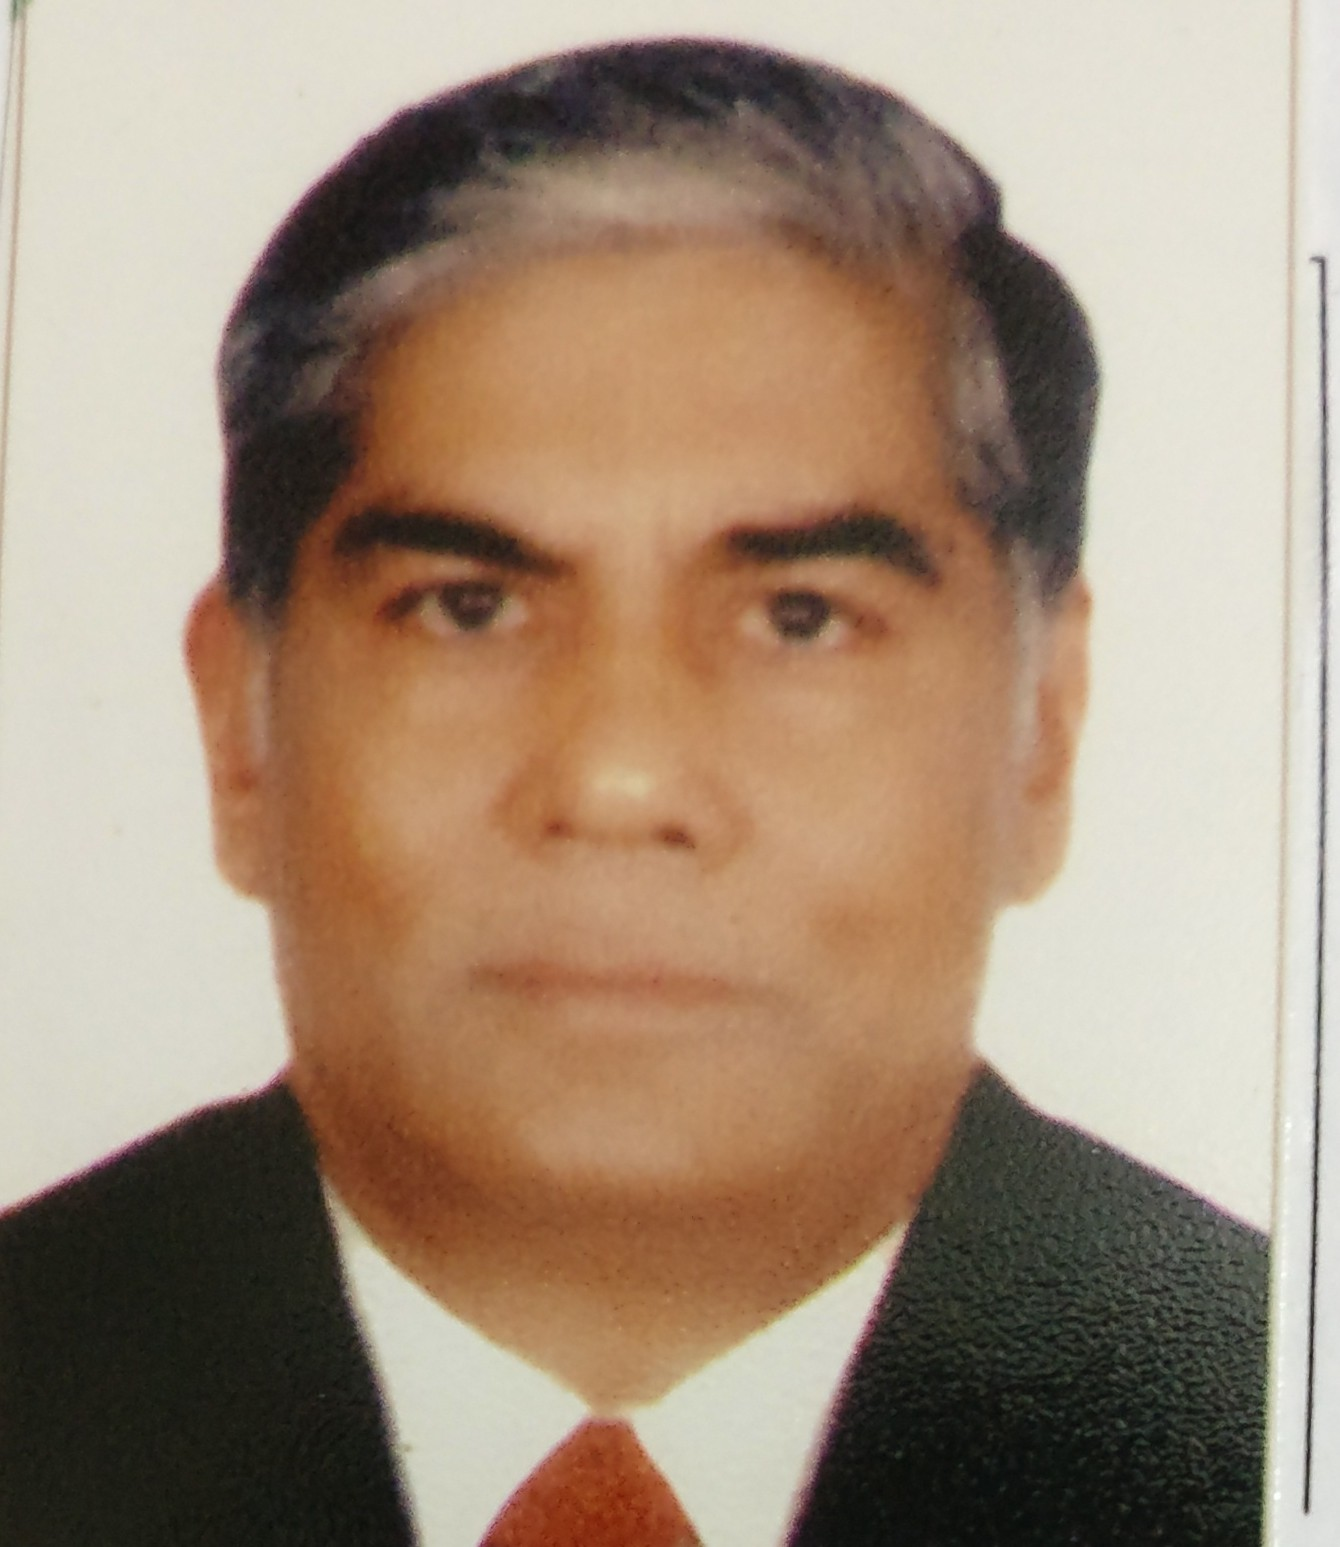 Mr. Vijay Kalantri